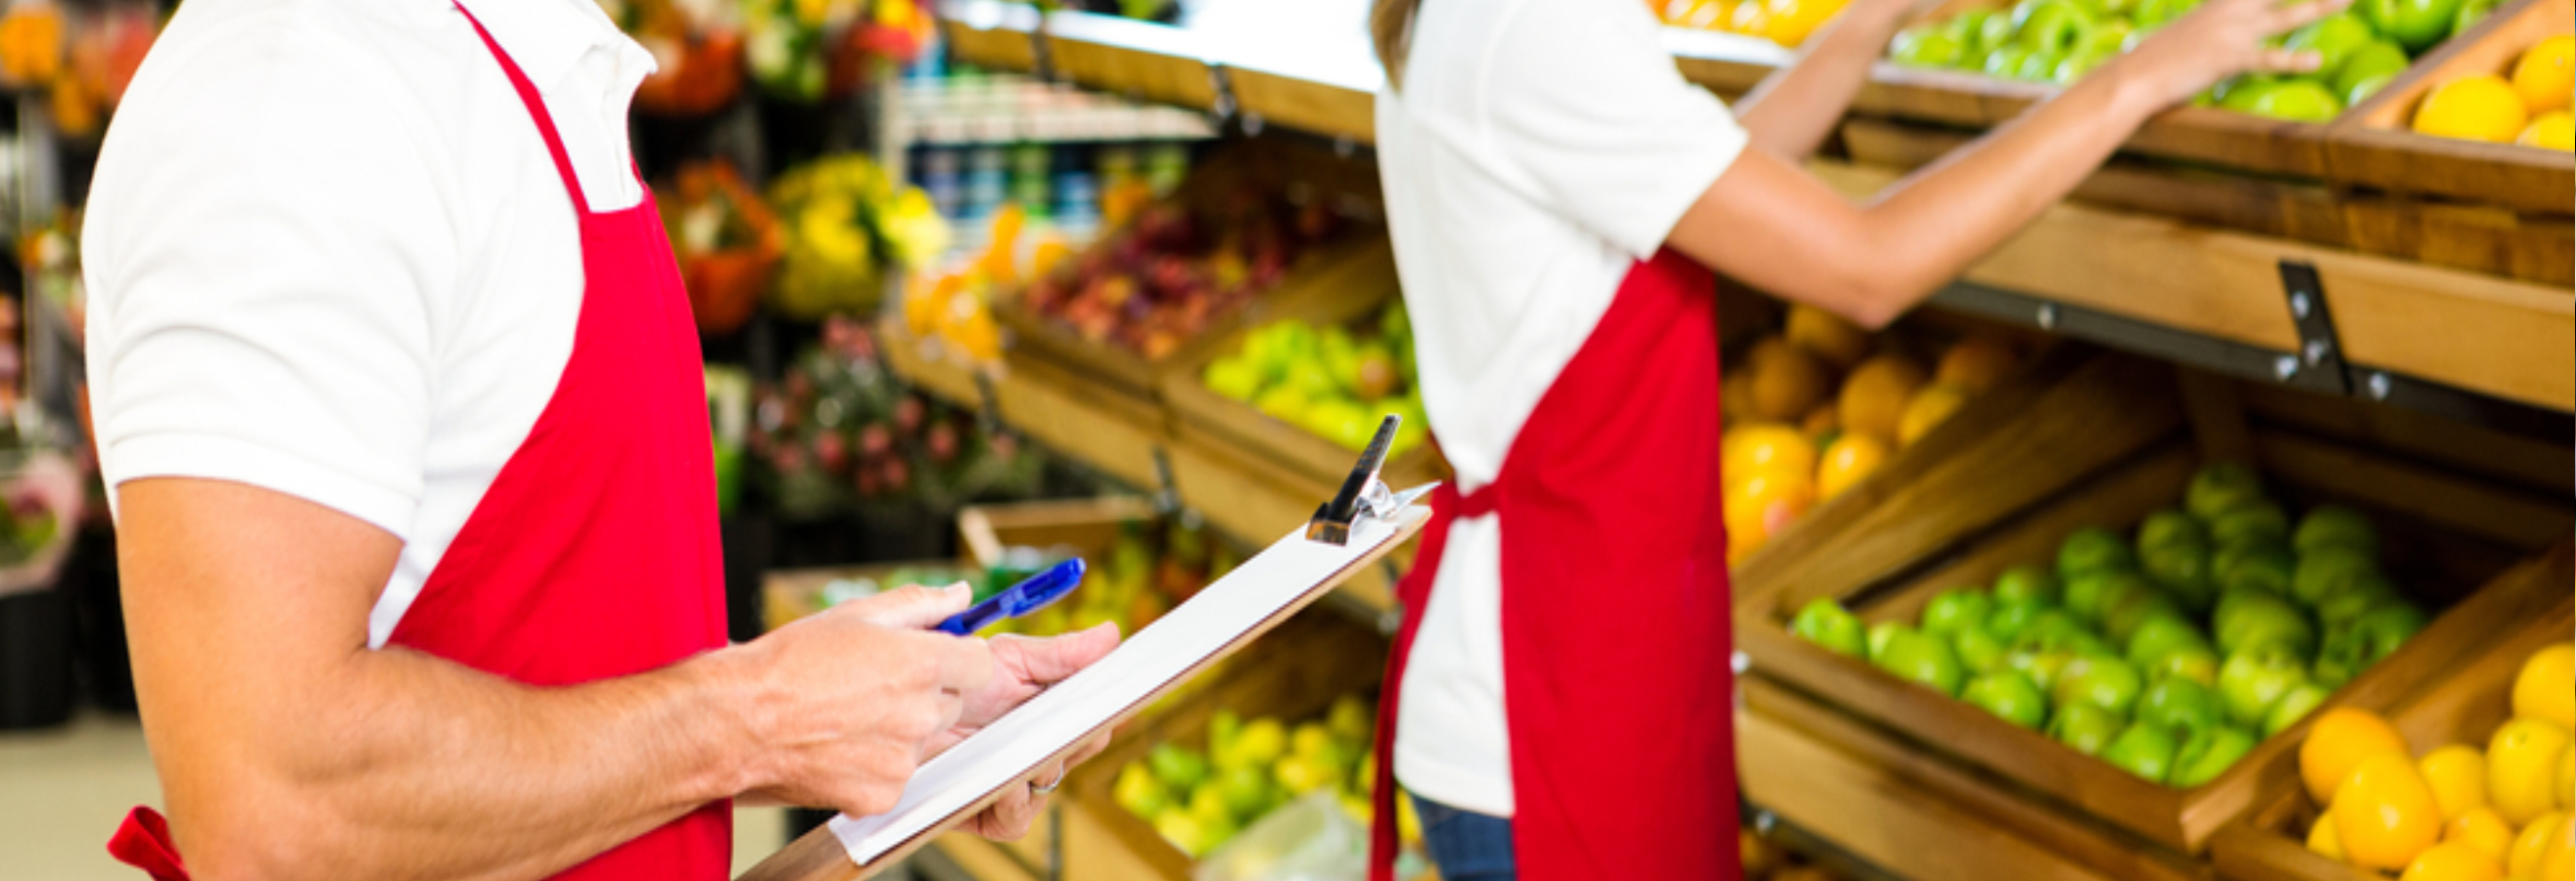 Featured image for 5 ways to improve in-store retail productivity within your workforce